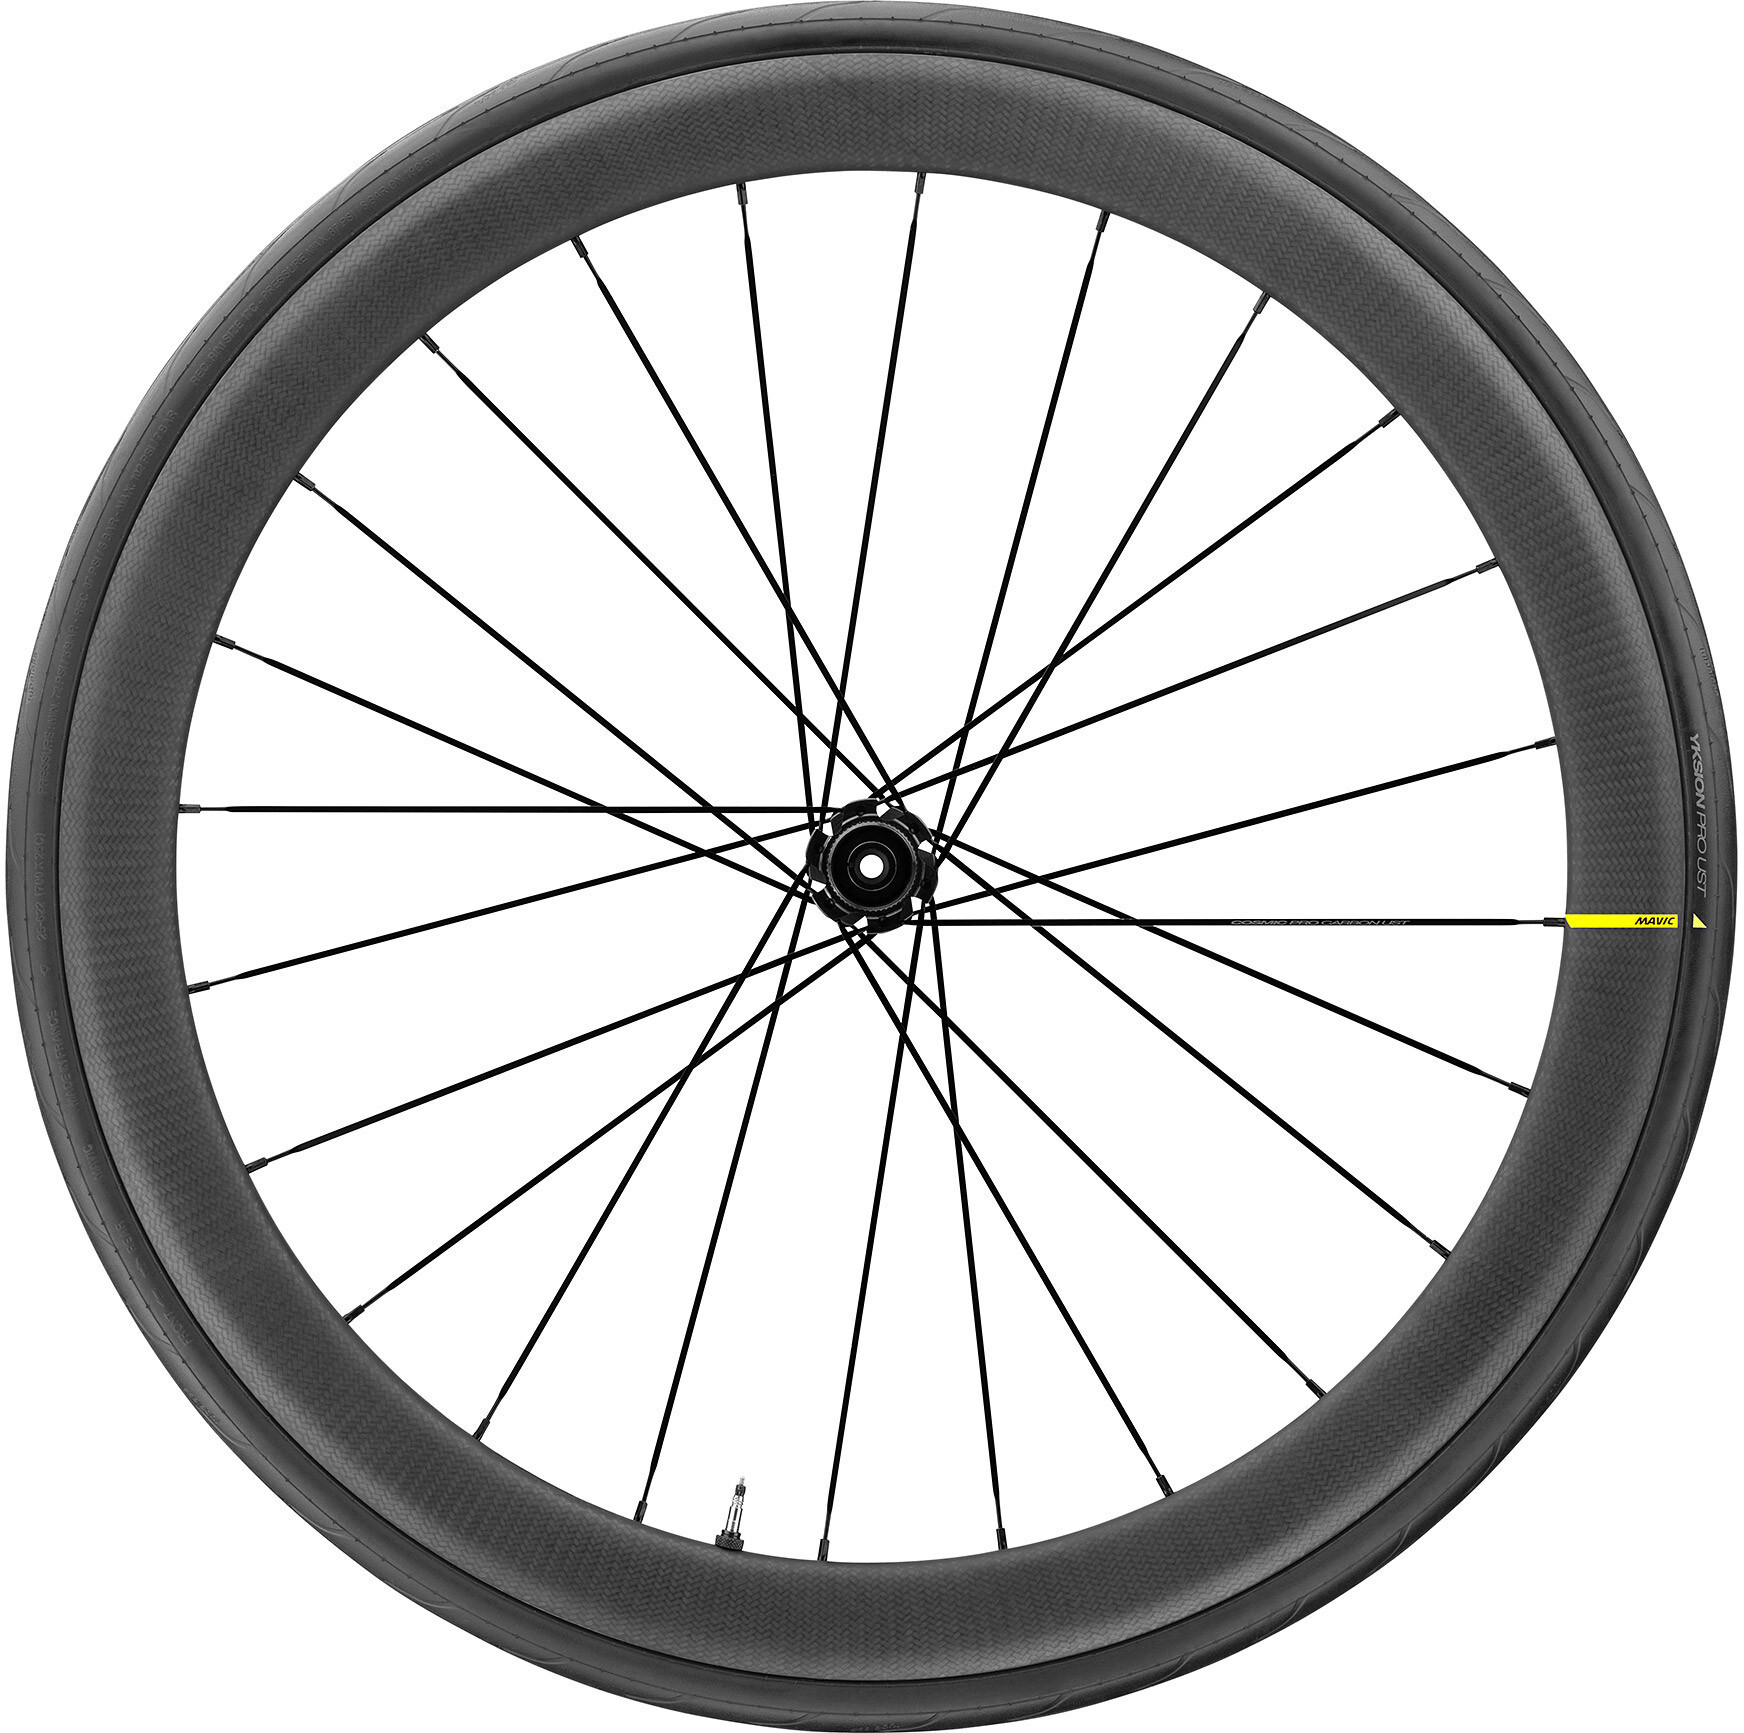 Mavic Cosmic Pro Carbon UST Front Wheel Disc CL 650B (2019) | Front wheel